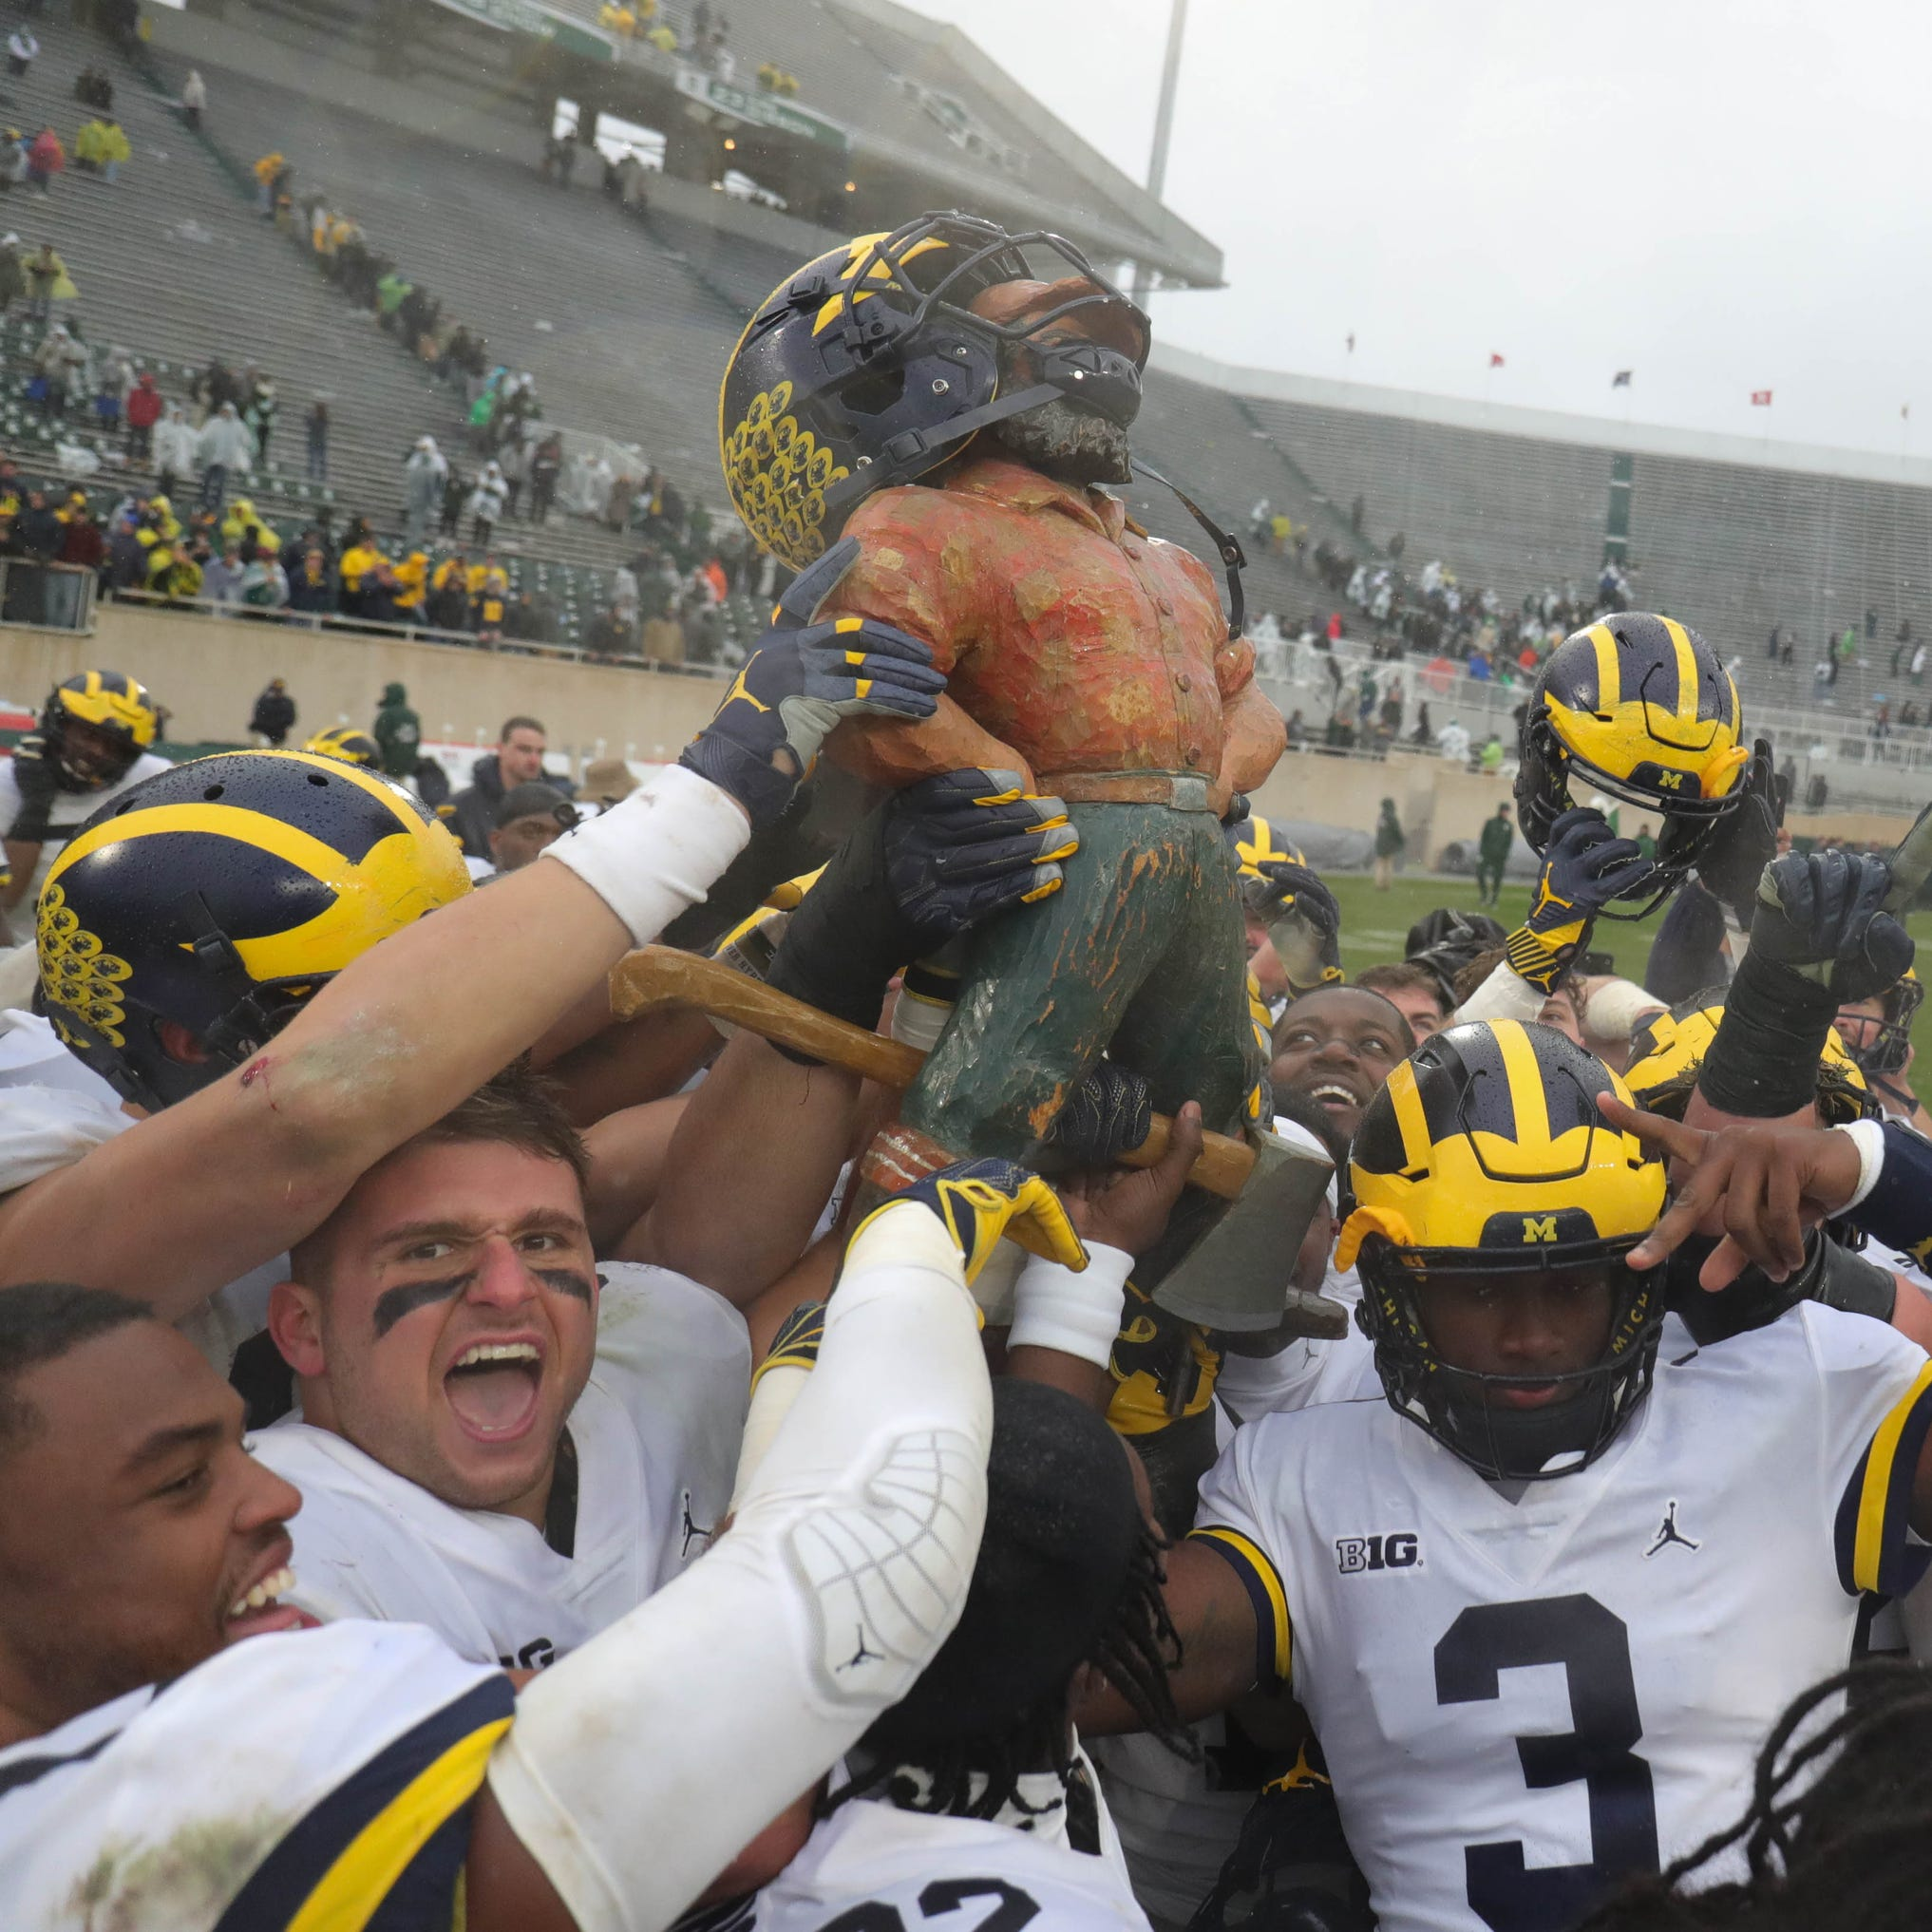 Mitch Albom: Michigan football beats down MSU in chippy, chirpy affair